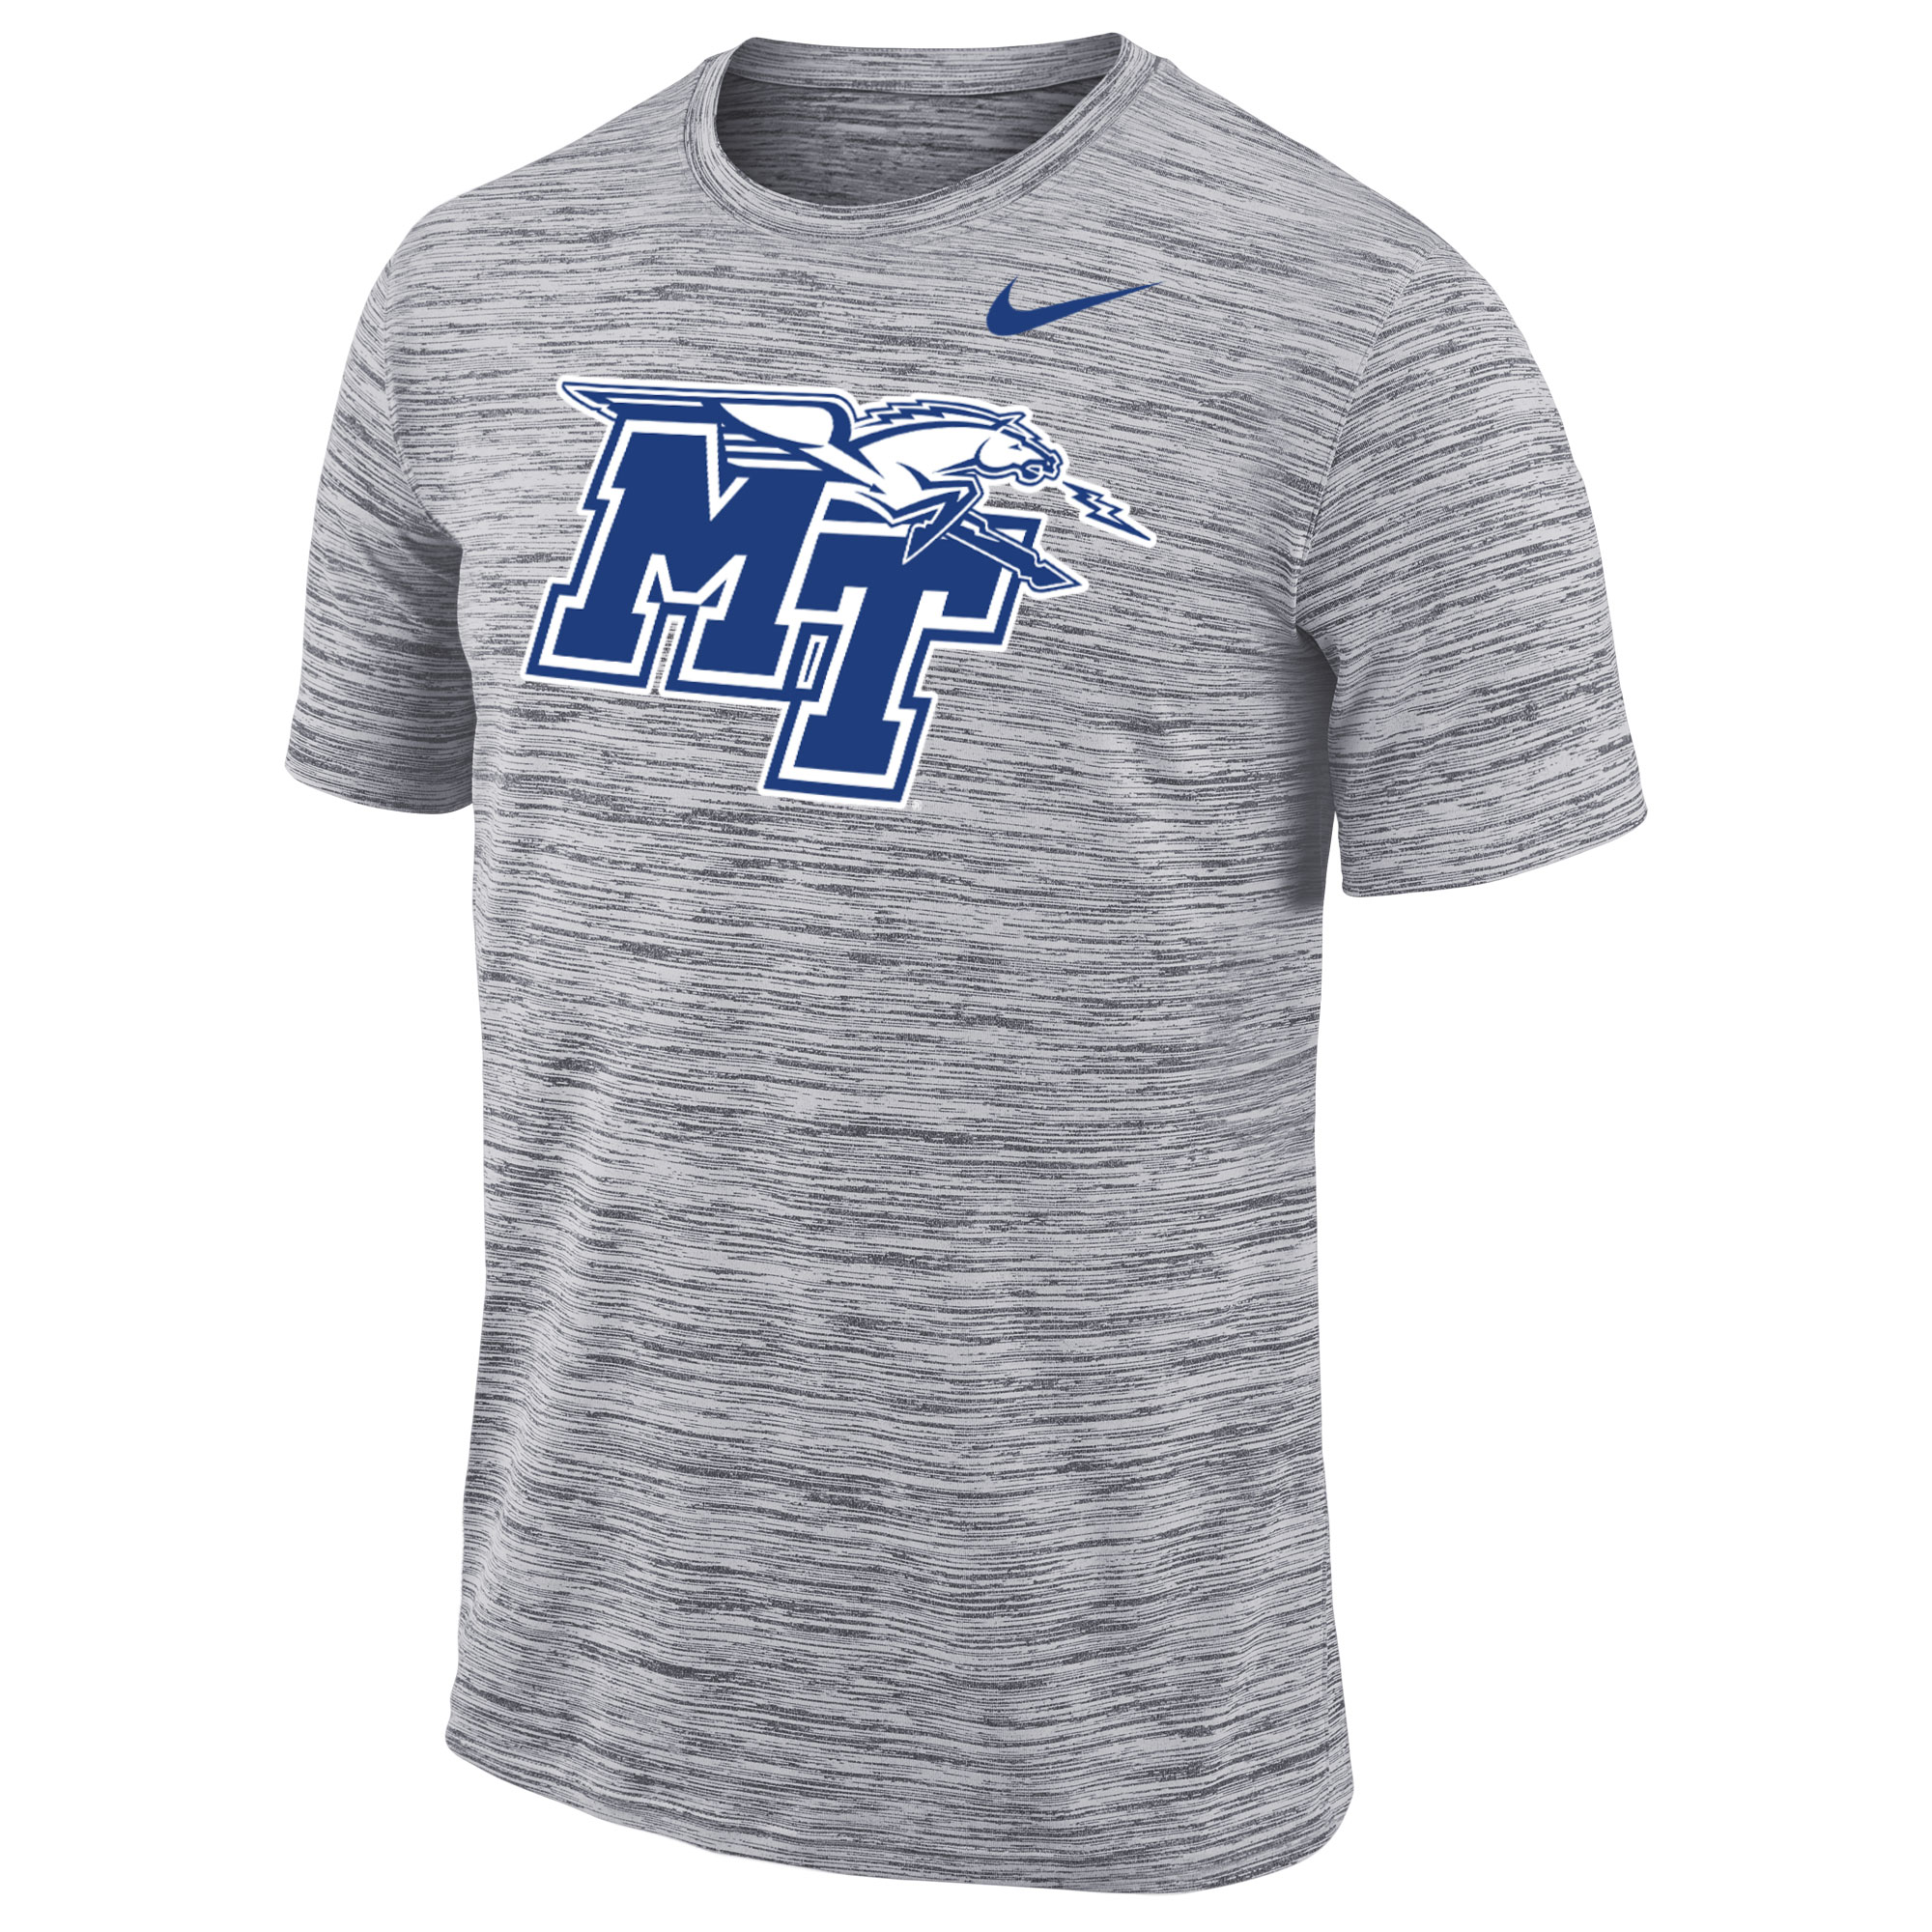 MT Logo w/ Lightning Nike® Legend Velocity Travel Shirt